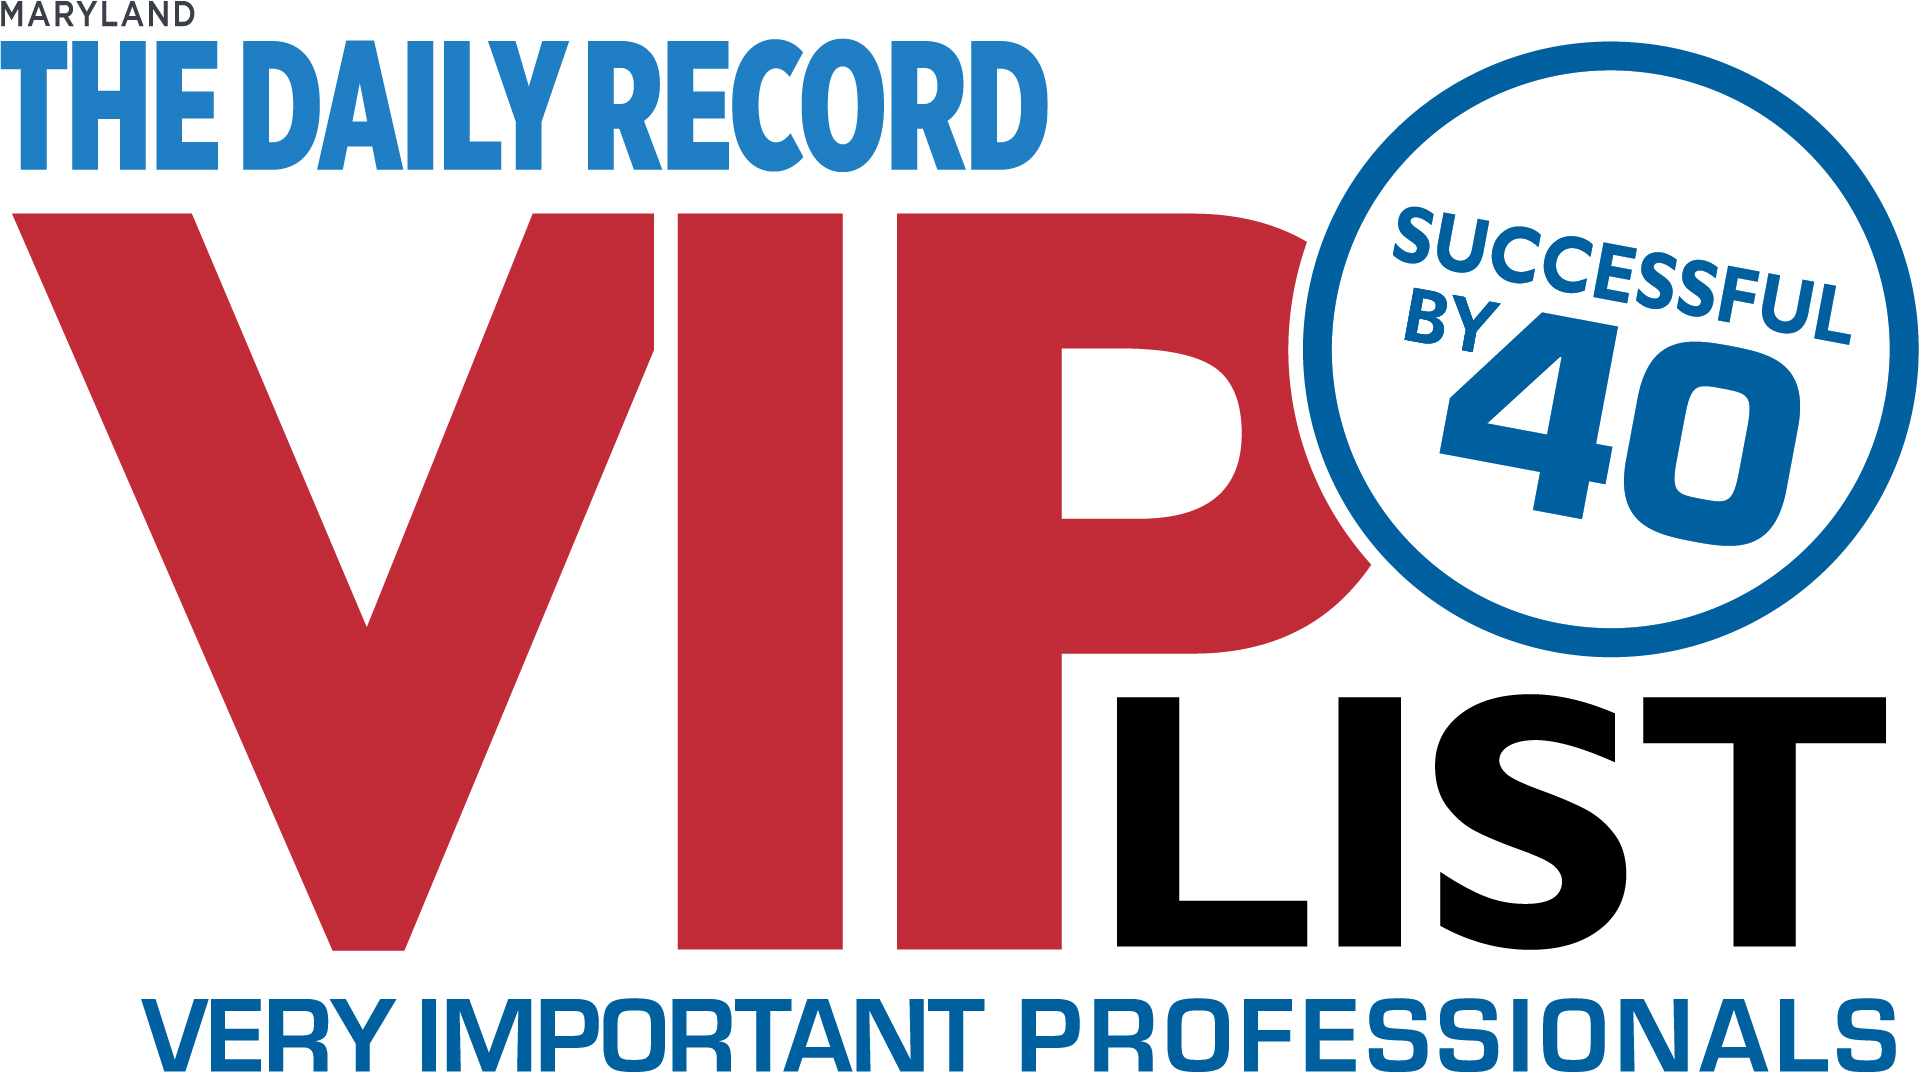 The Daily Record's VIP list